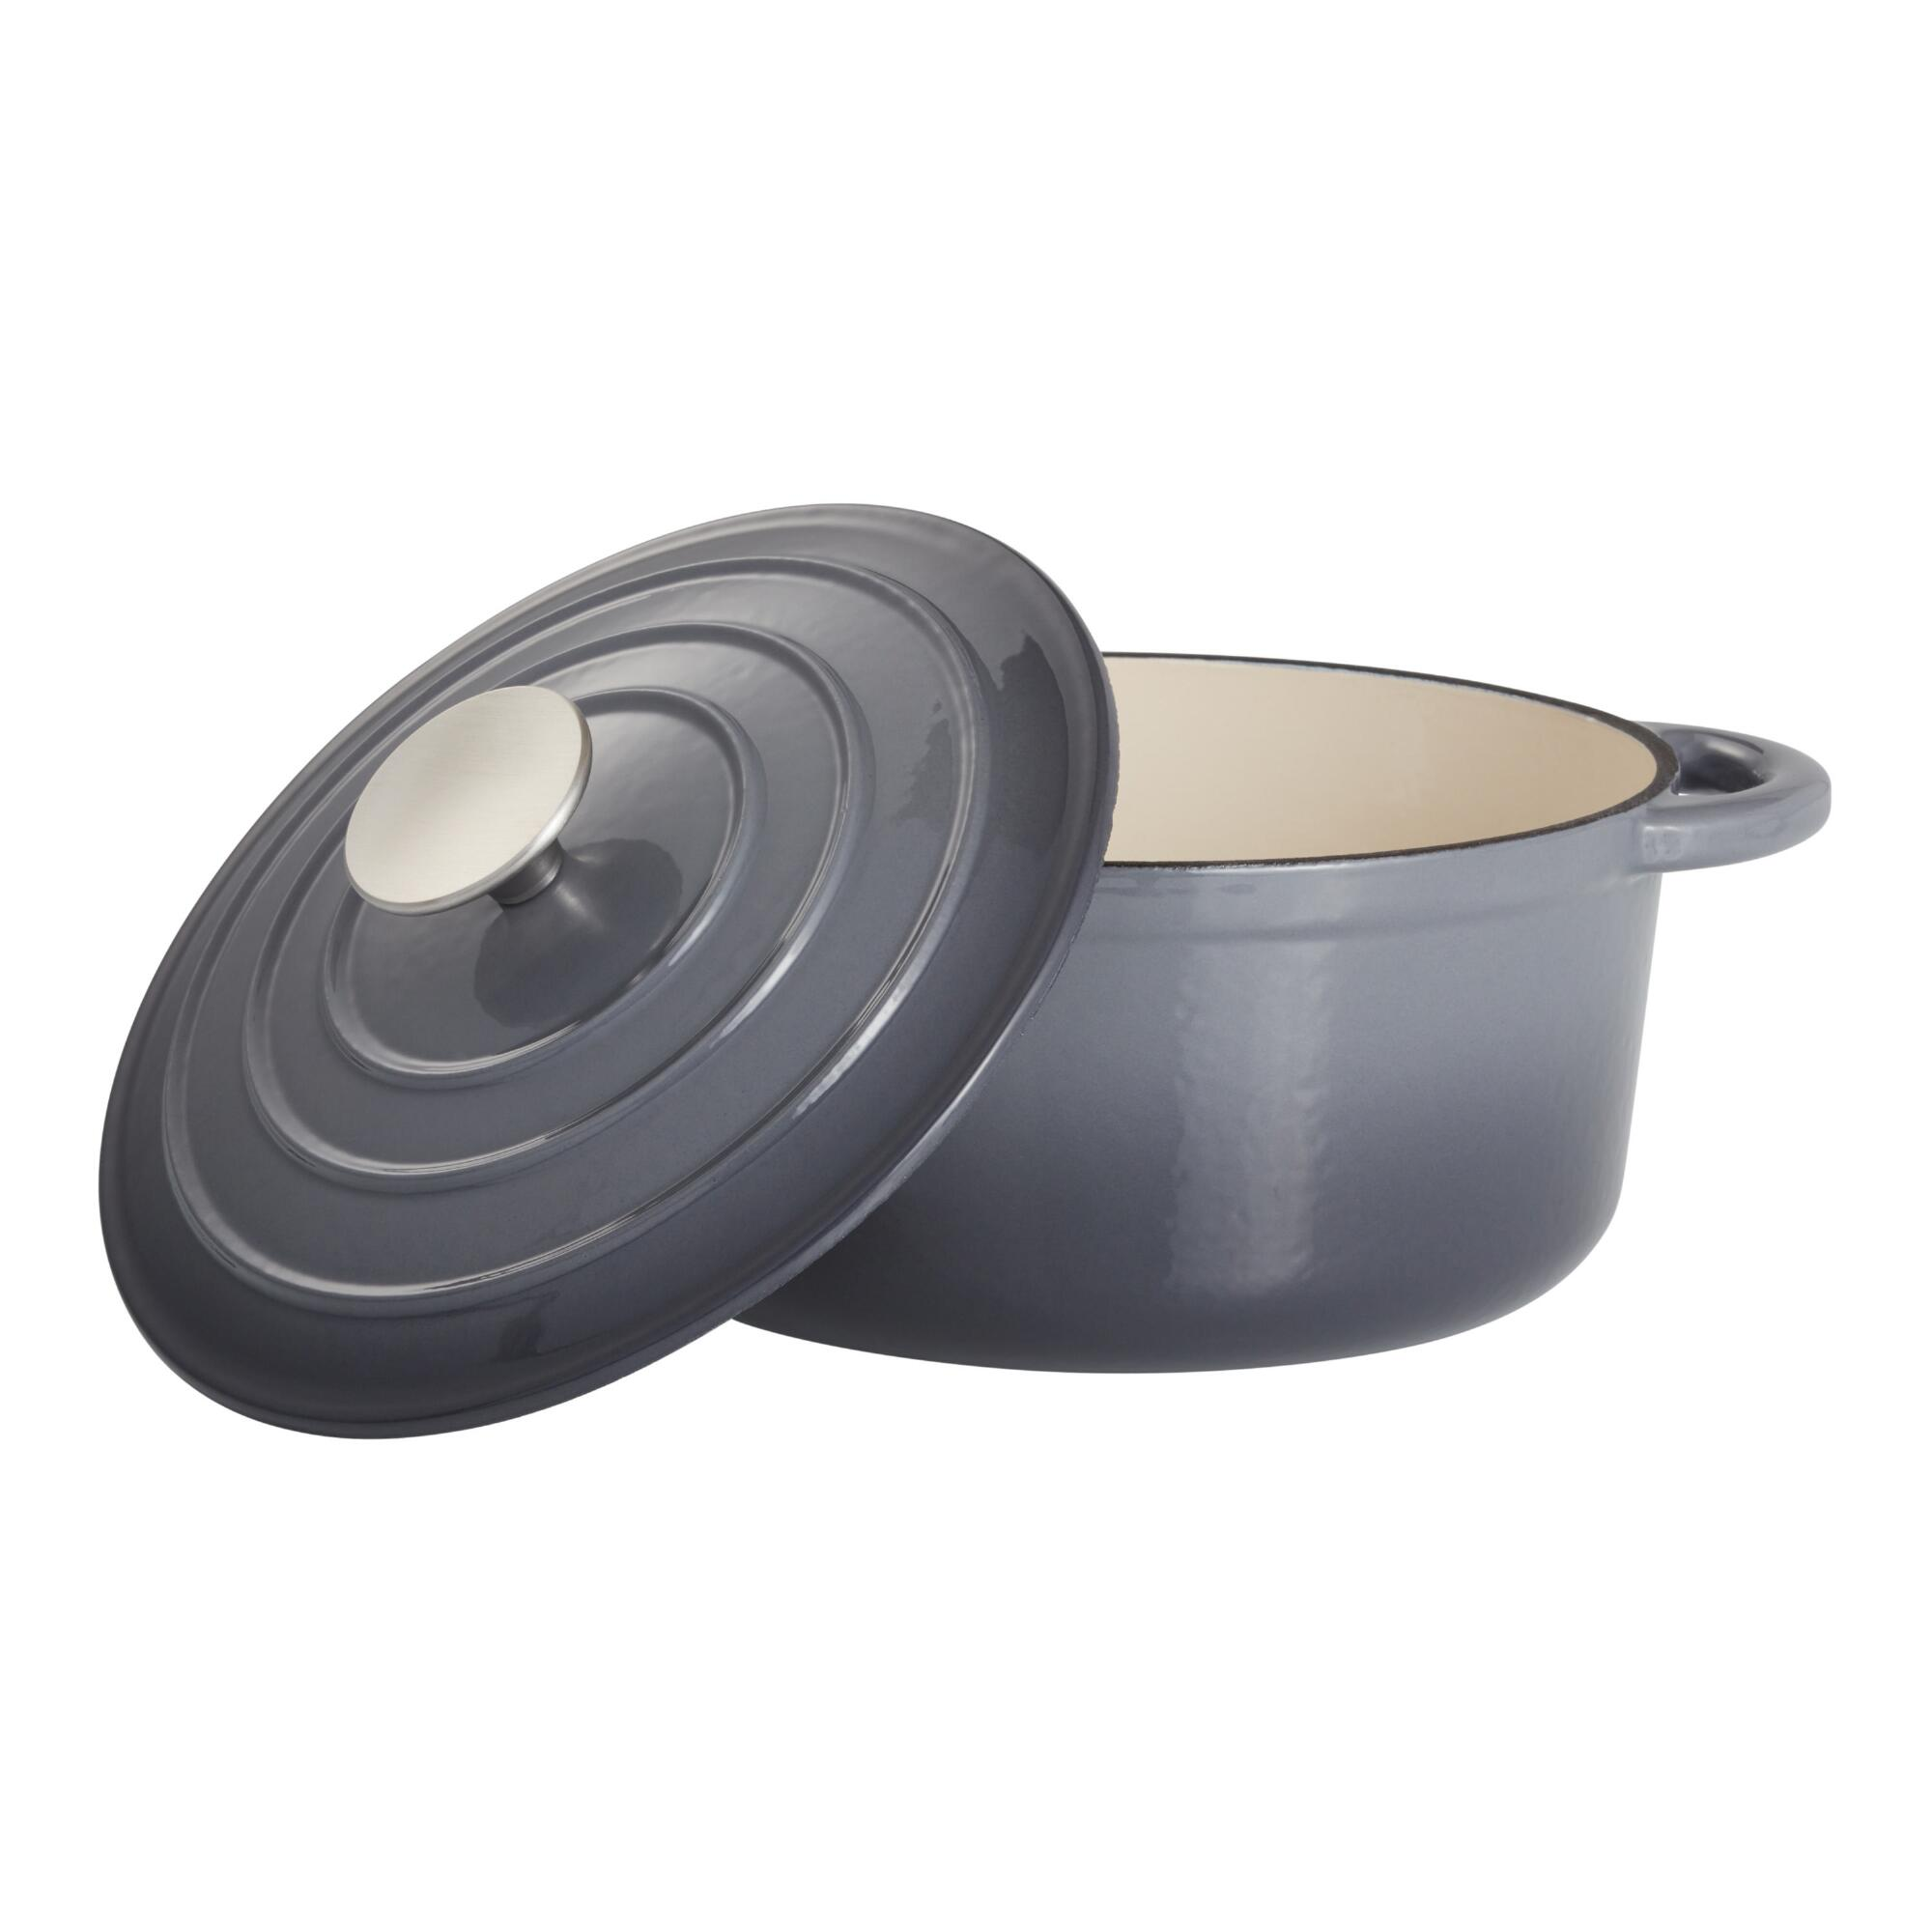 All Cookware